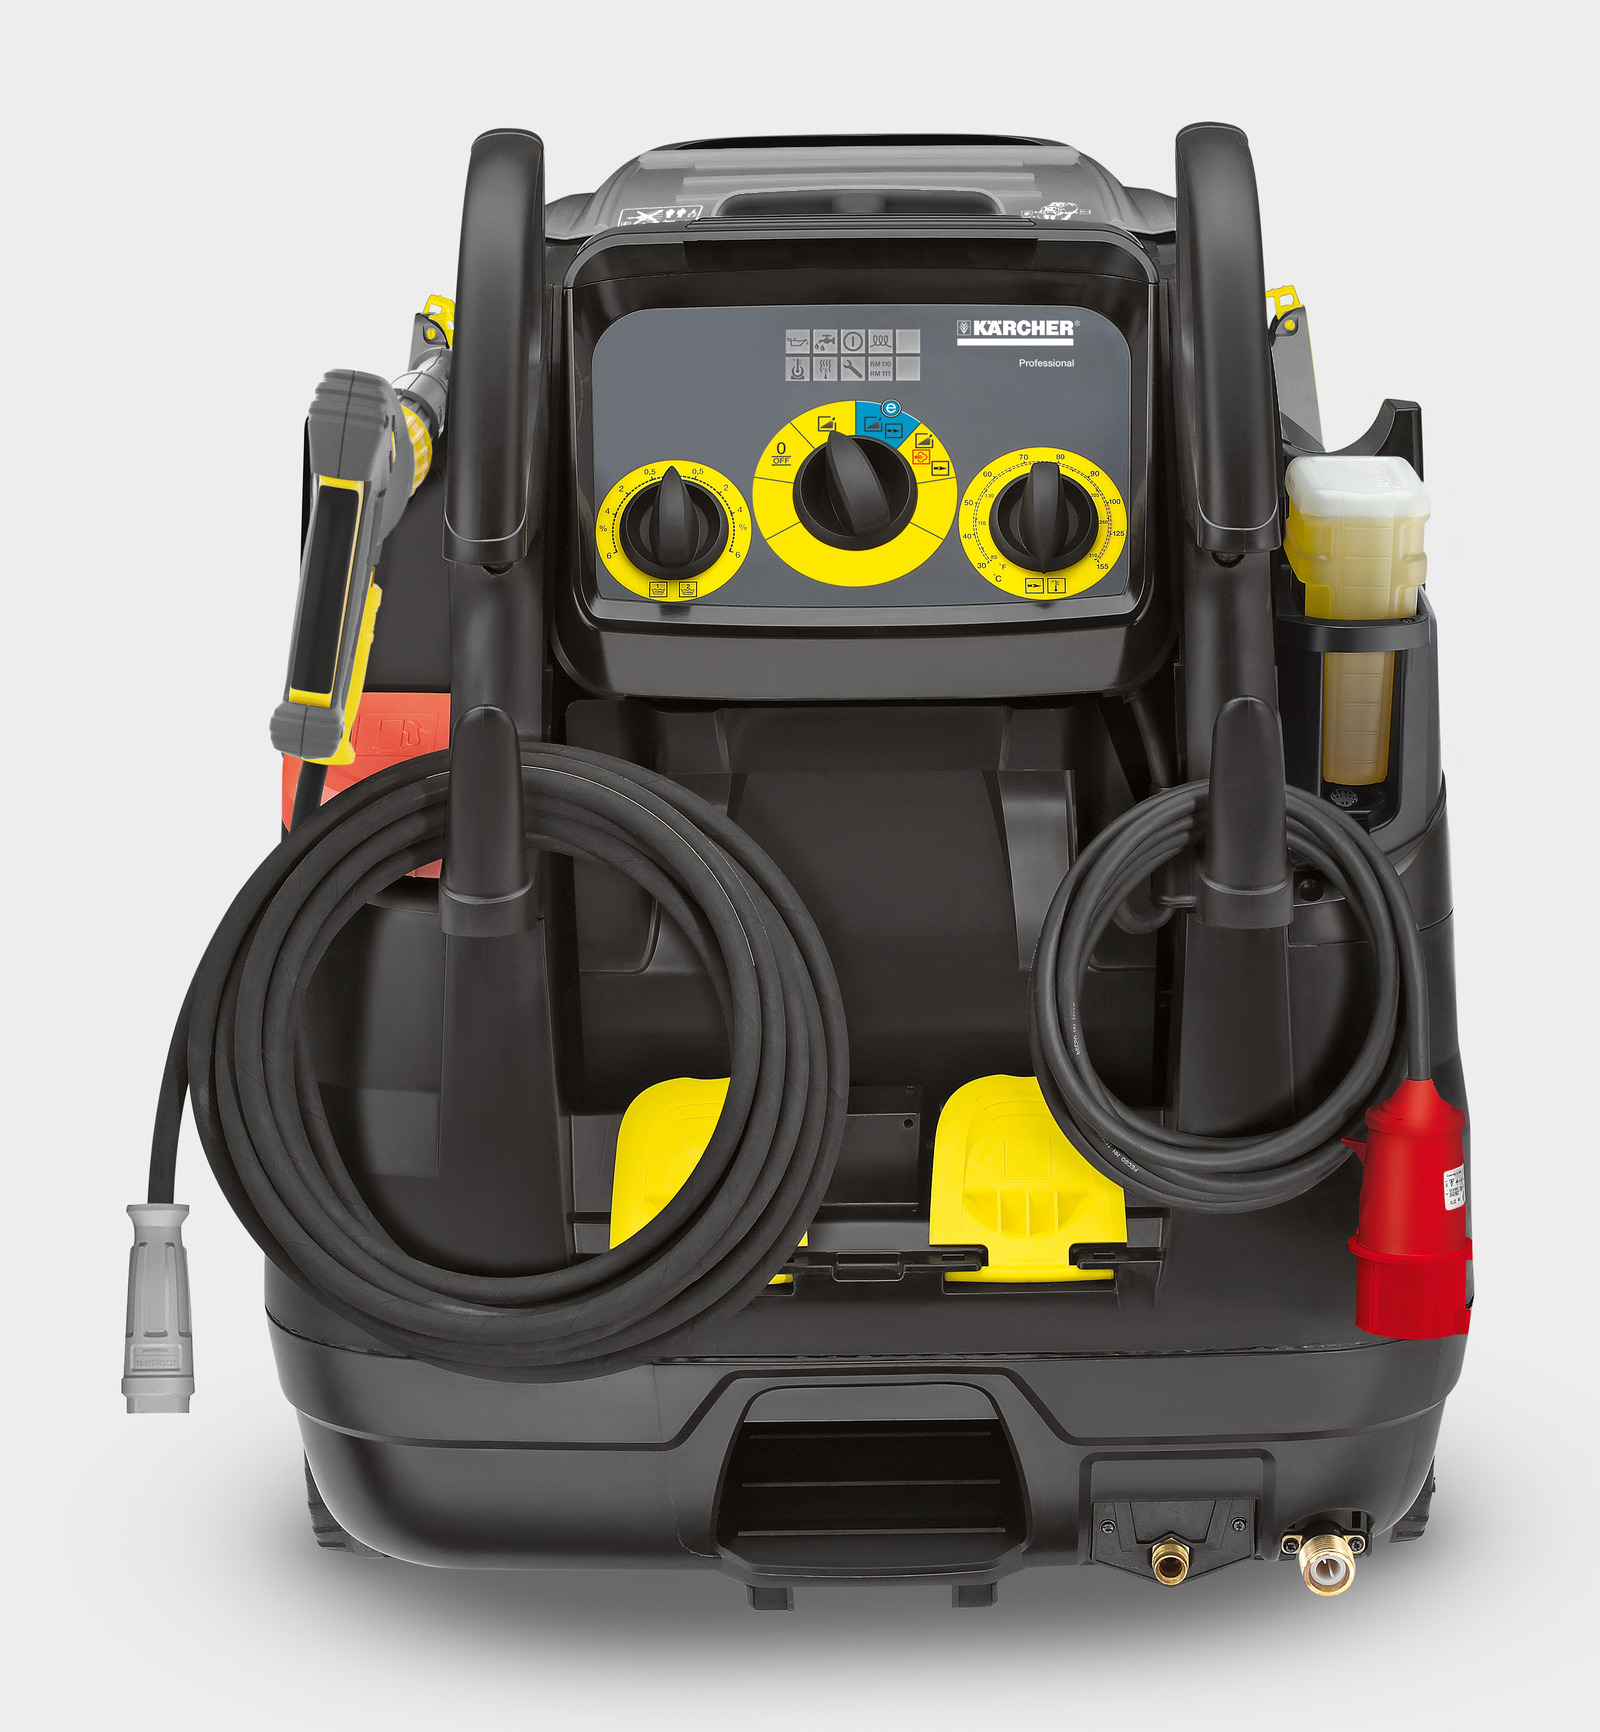 Karcher Hds 750 Service Manual | Wiring Liry on